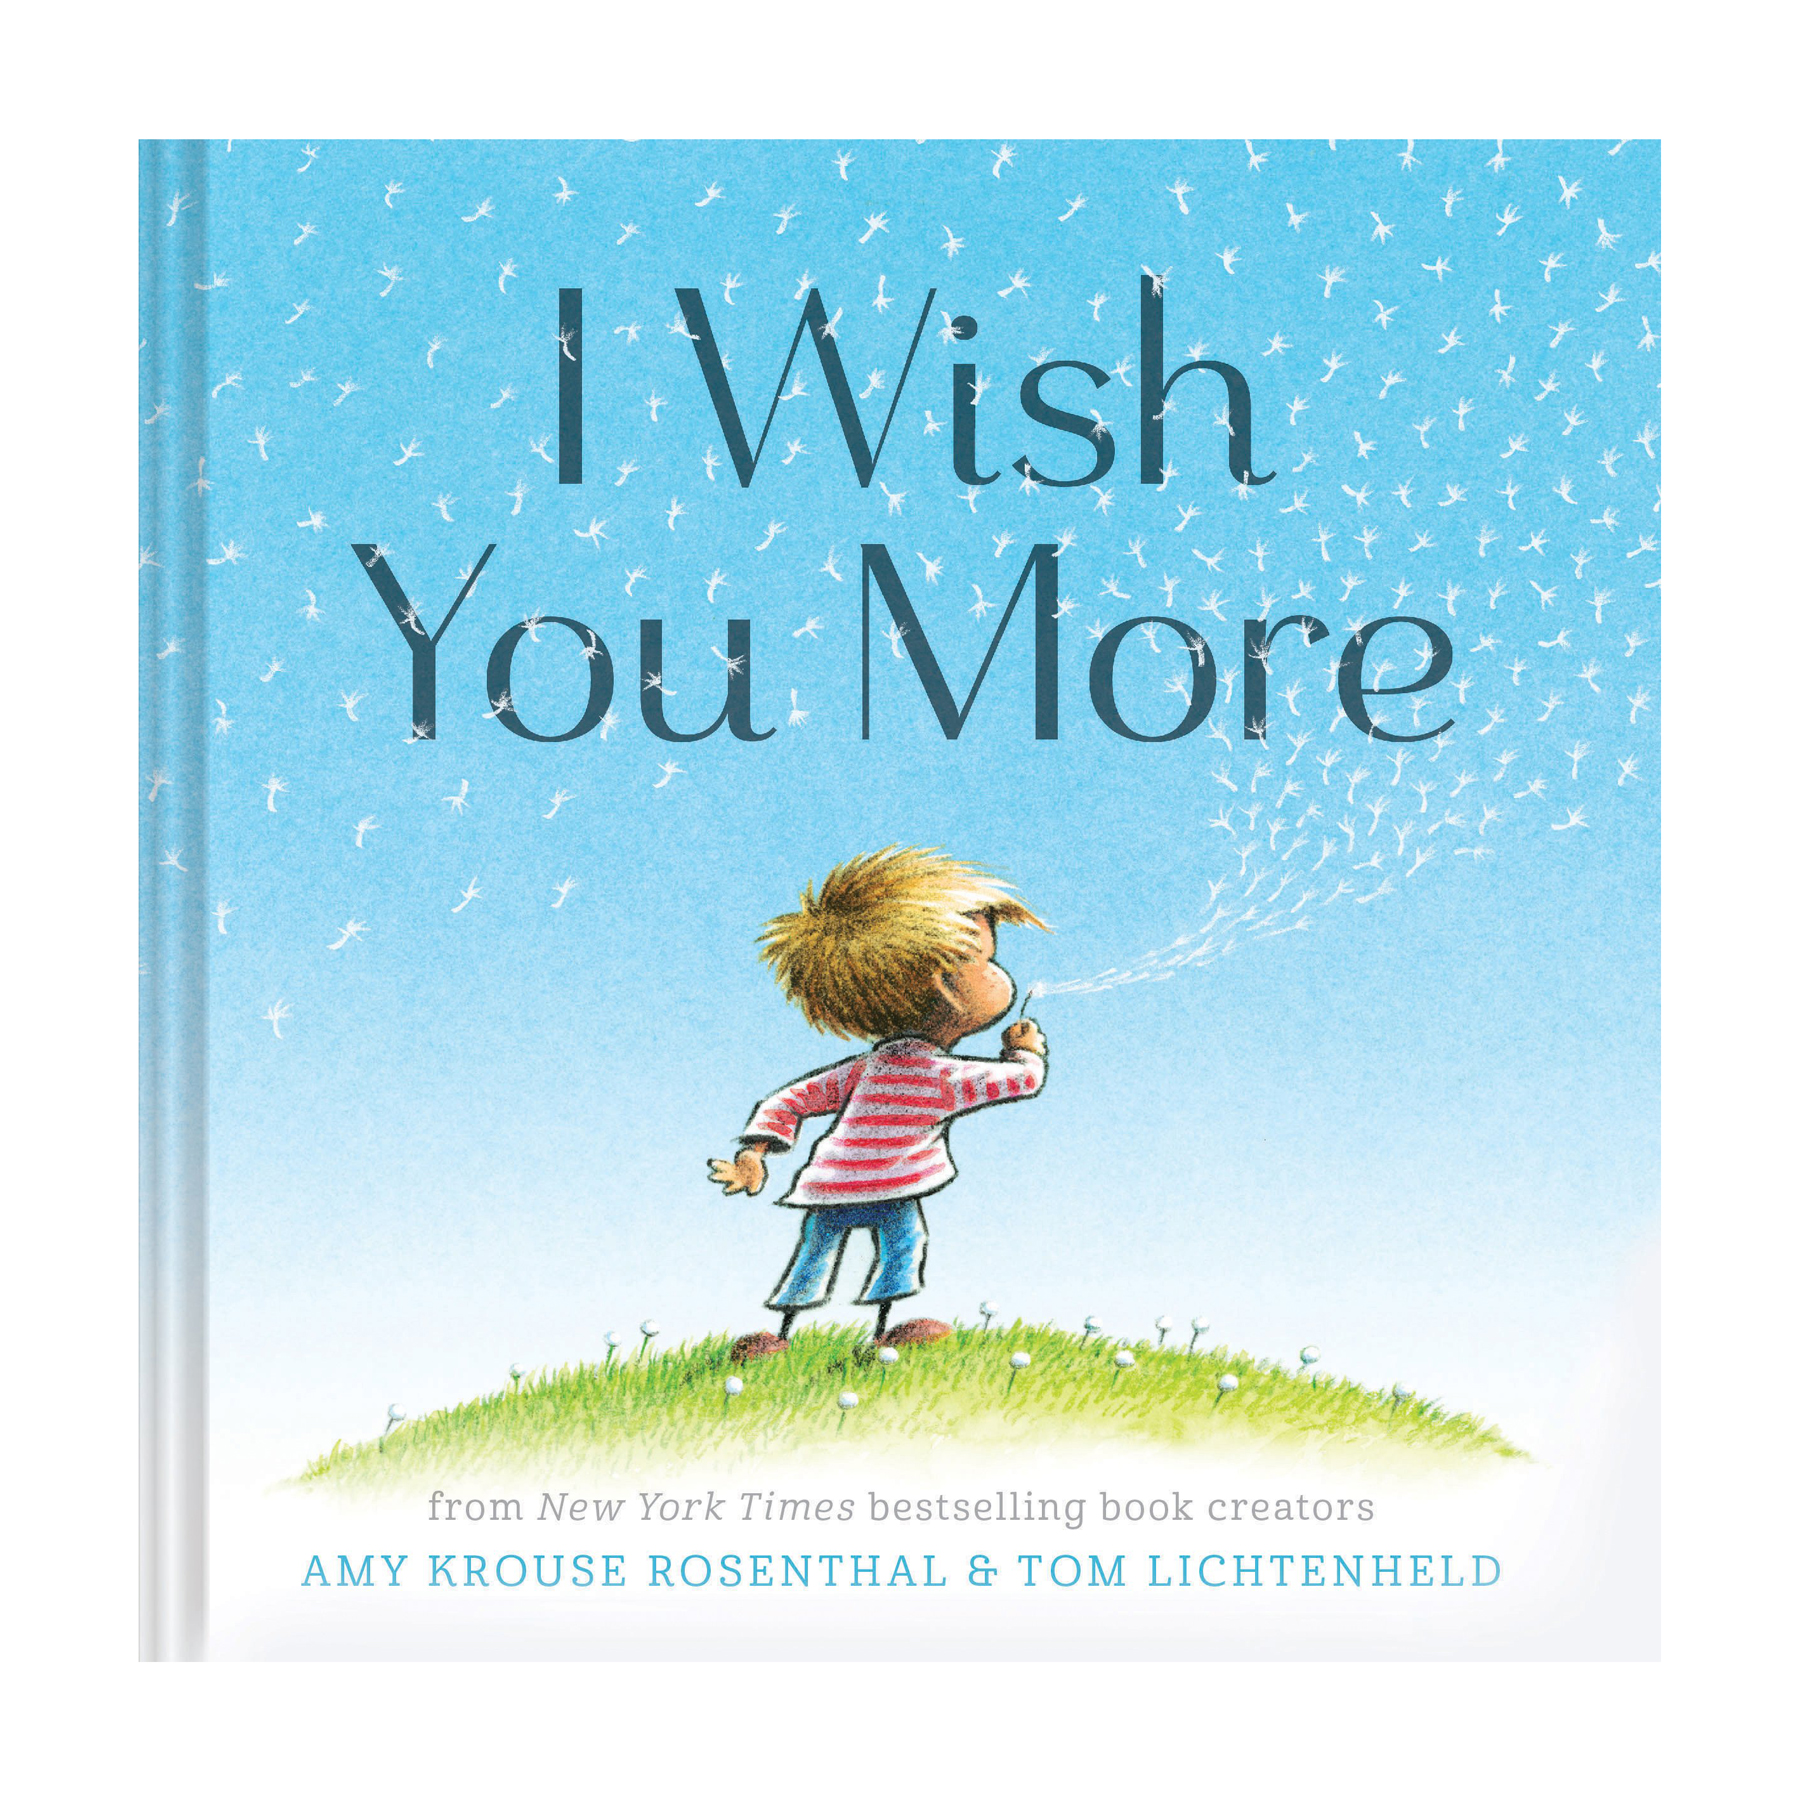 Best newborn baby gifts - I Wish You More by Amy Krouse Rosenthal and Tom Lichtenheld